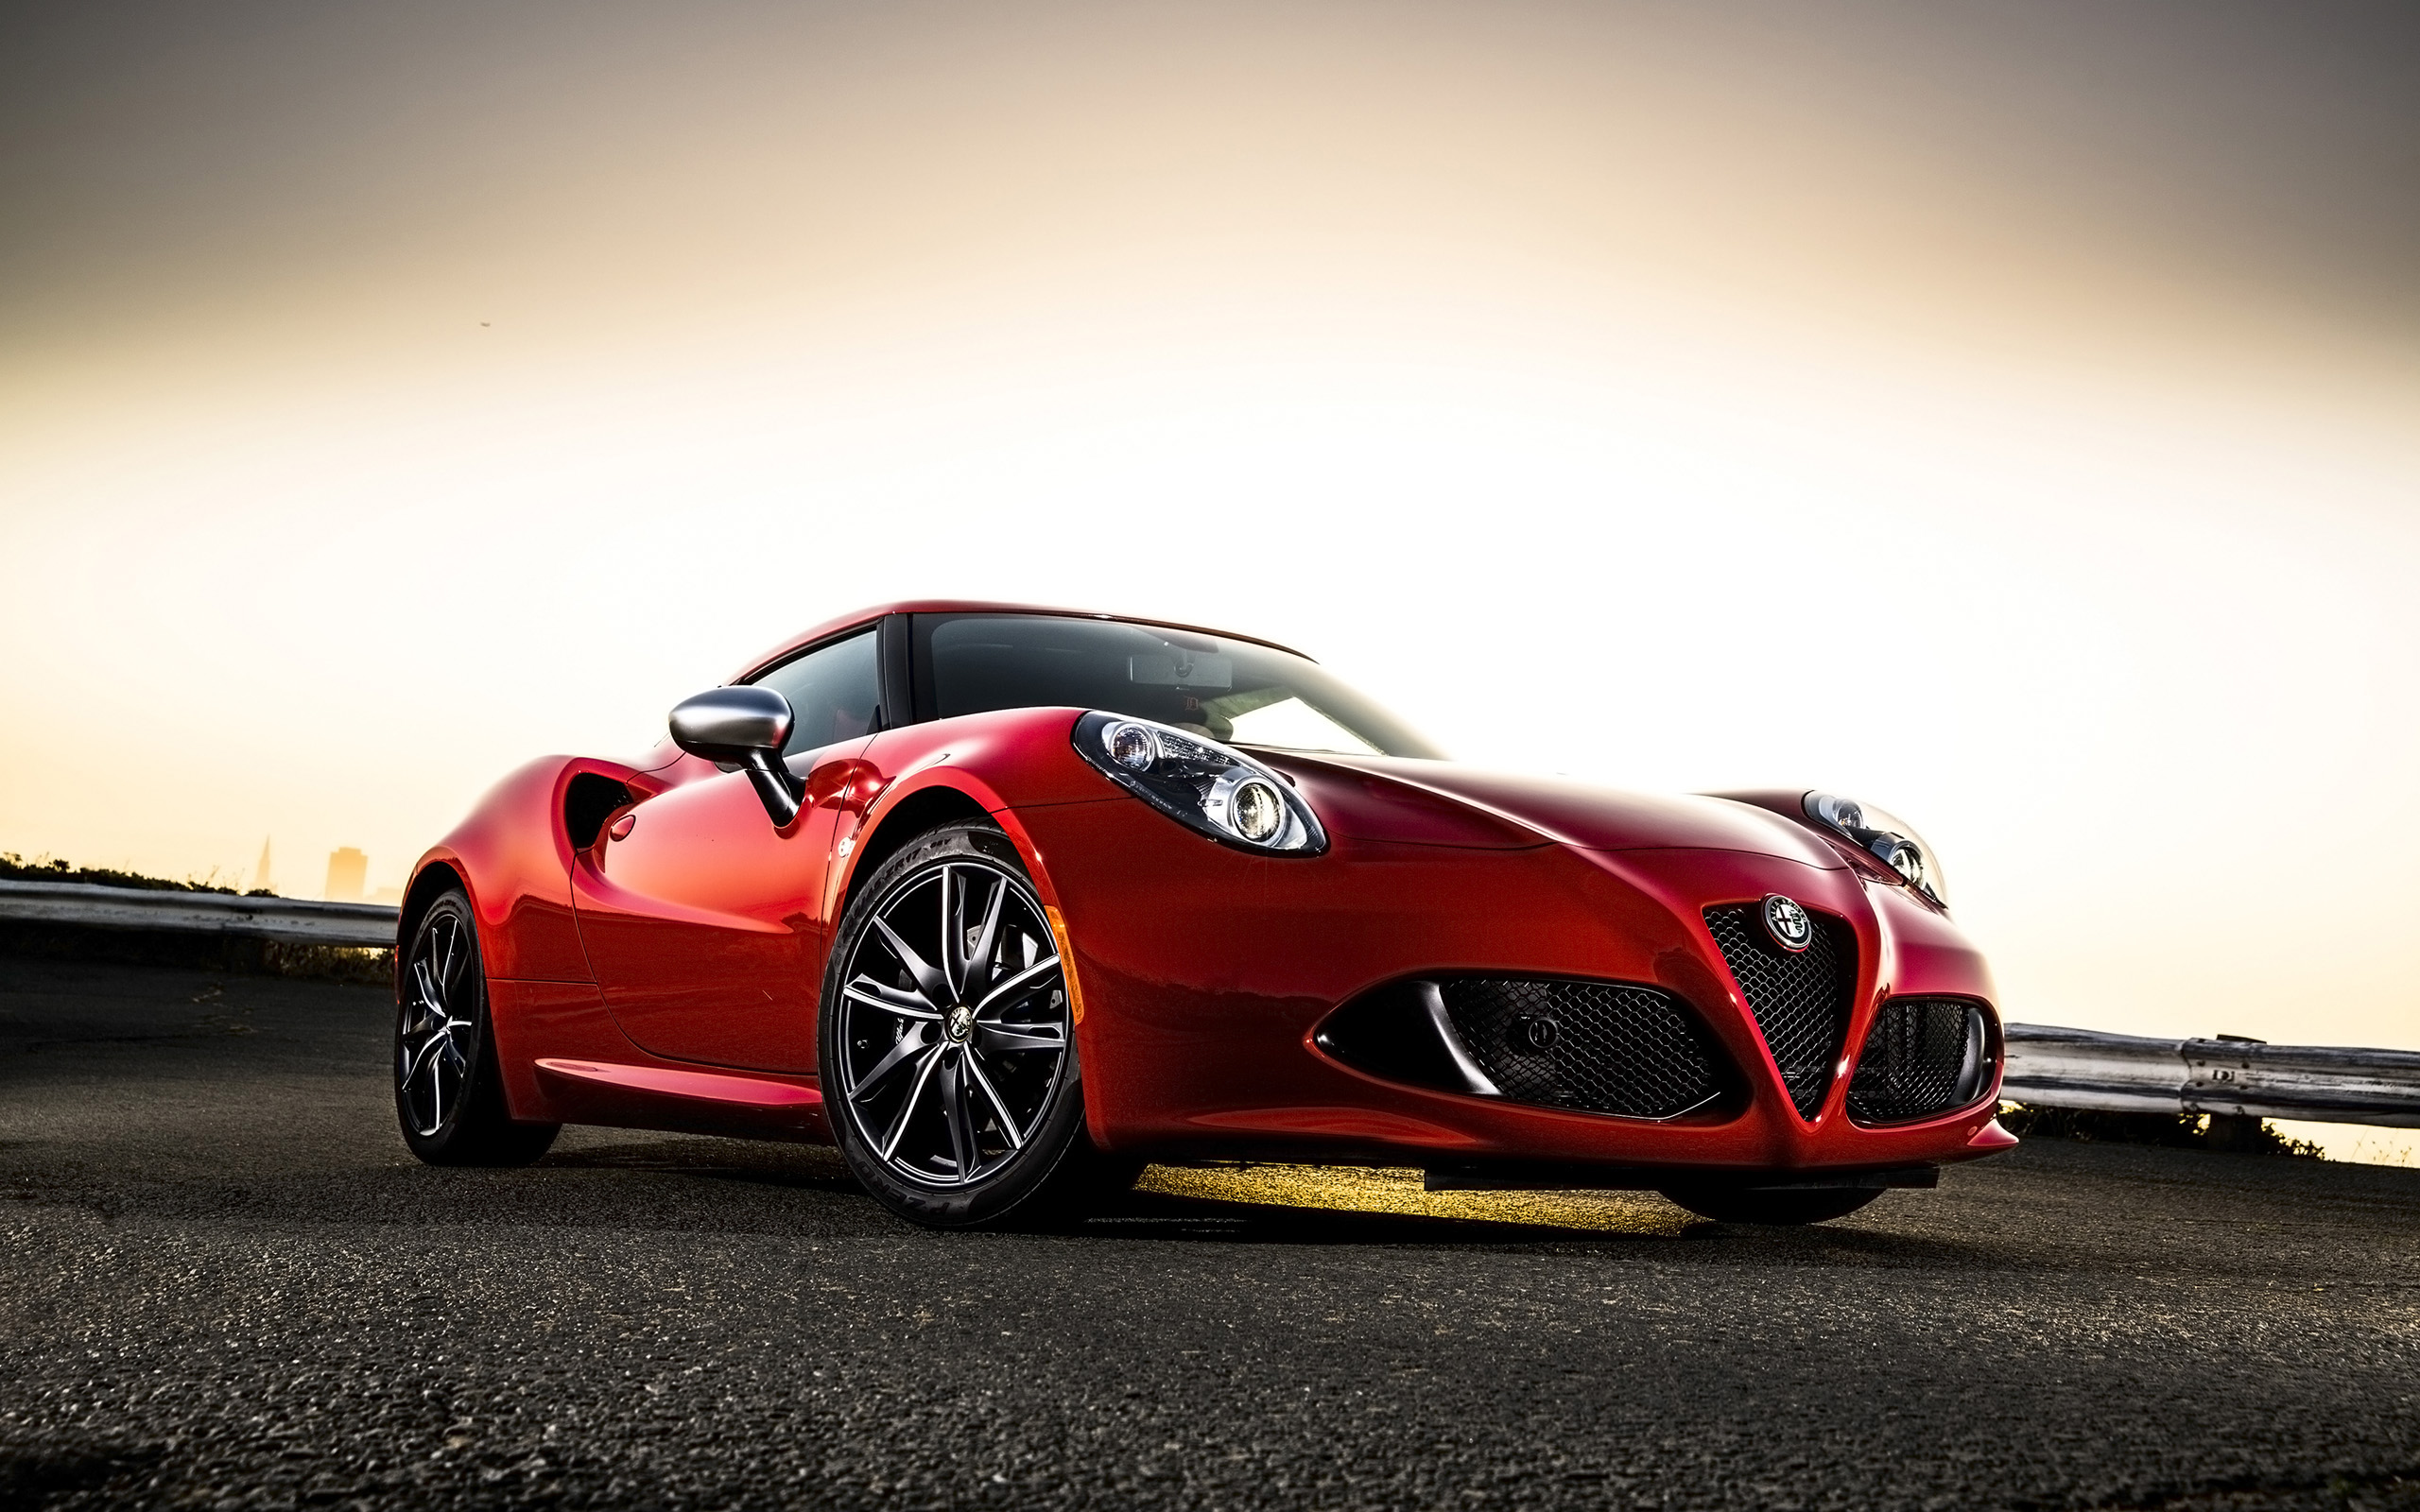 Alfa Romeo 8C Spider Wallpapers and Background Images   stmednet 2560x1600